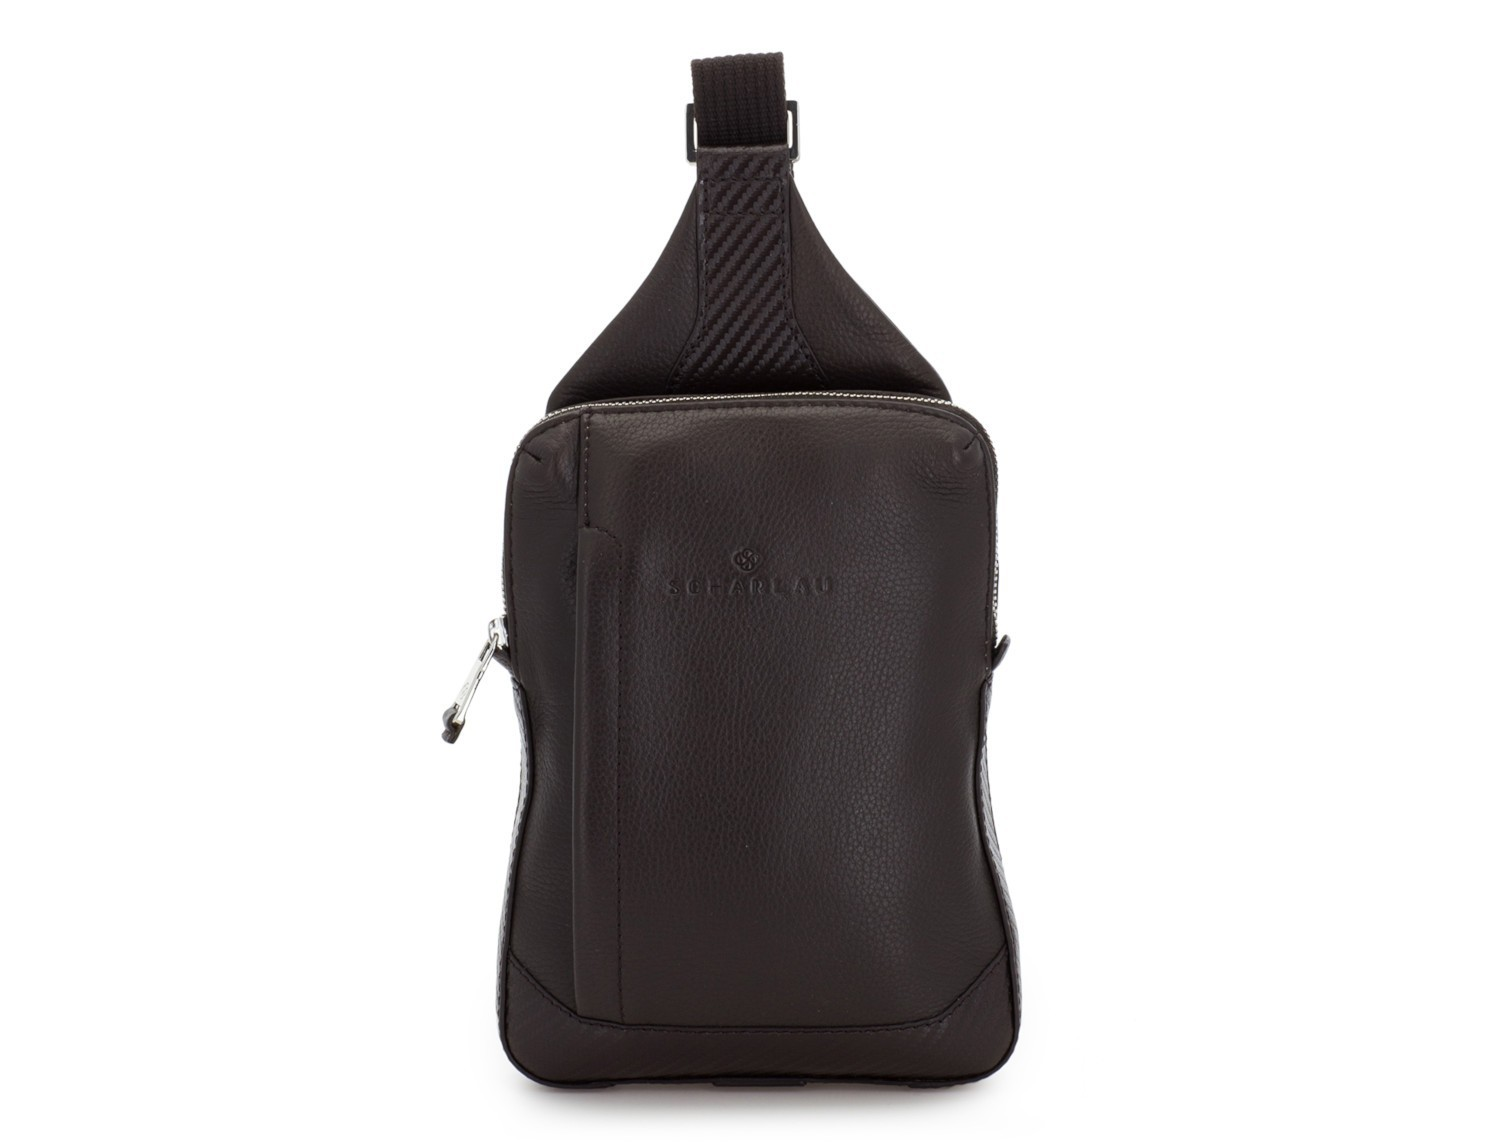 leather mono slim bag in brown front